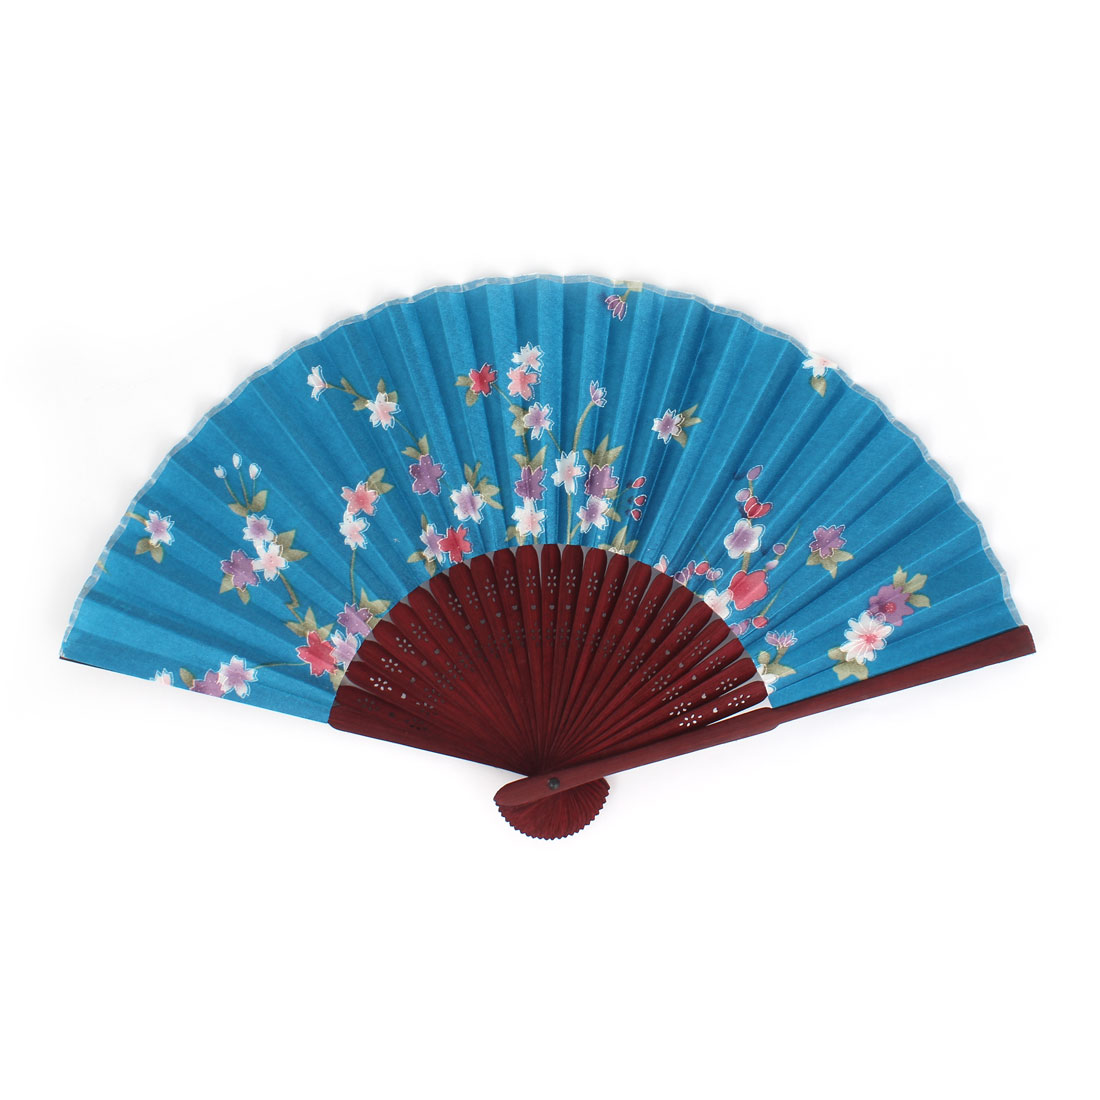 Chinese Style Hollow out Wood Ribs Fabric Floral Print Folding Hand Fan Blue